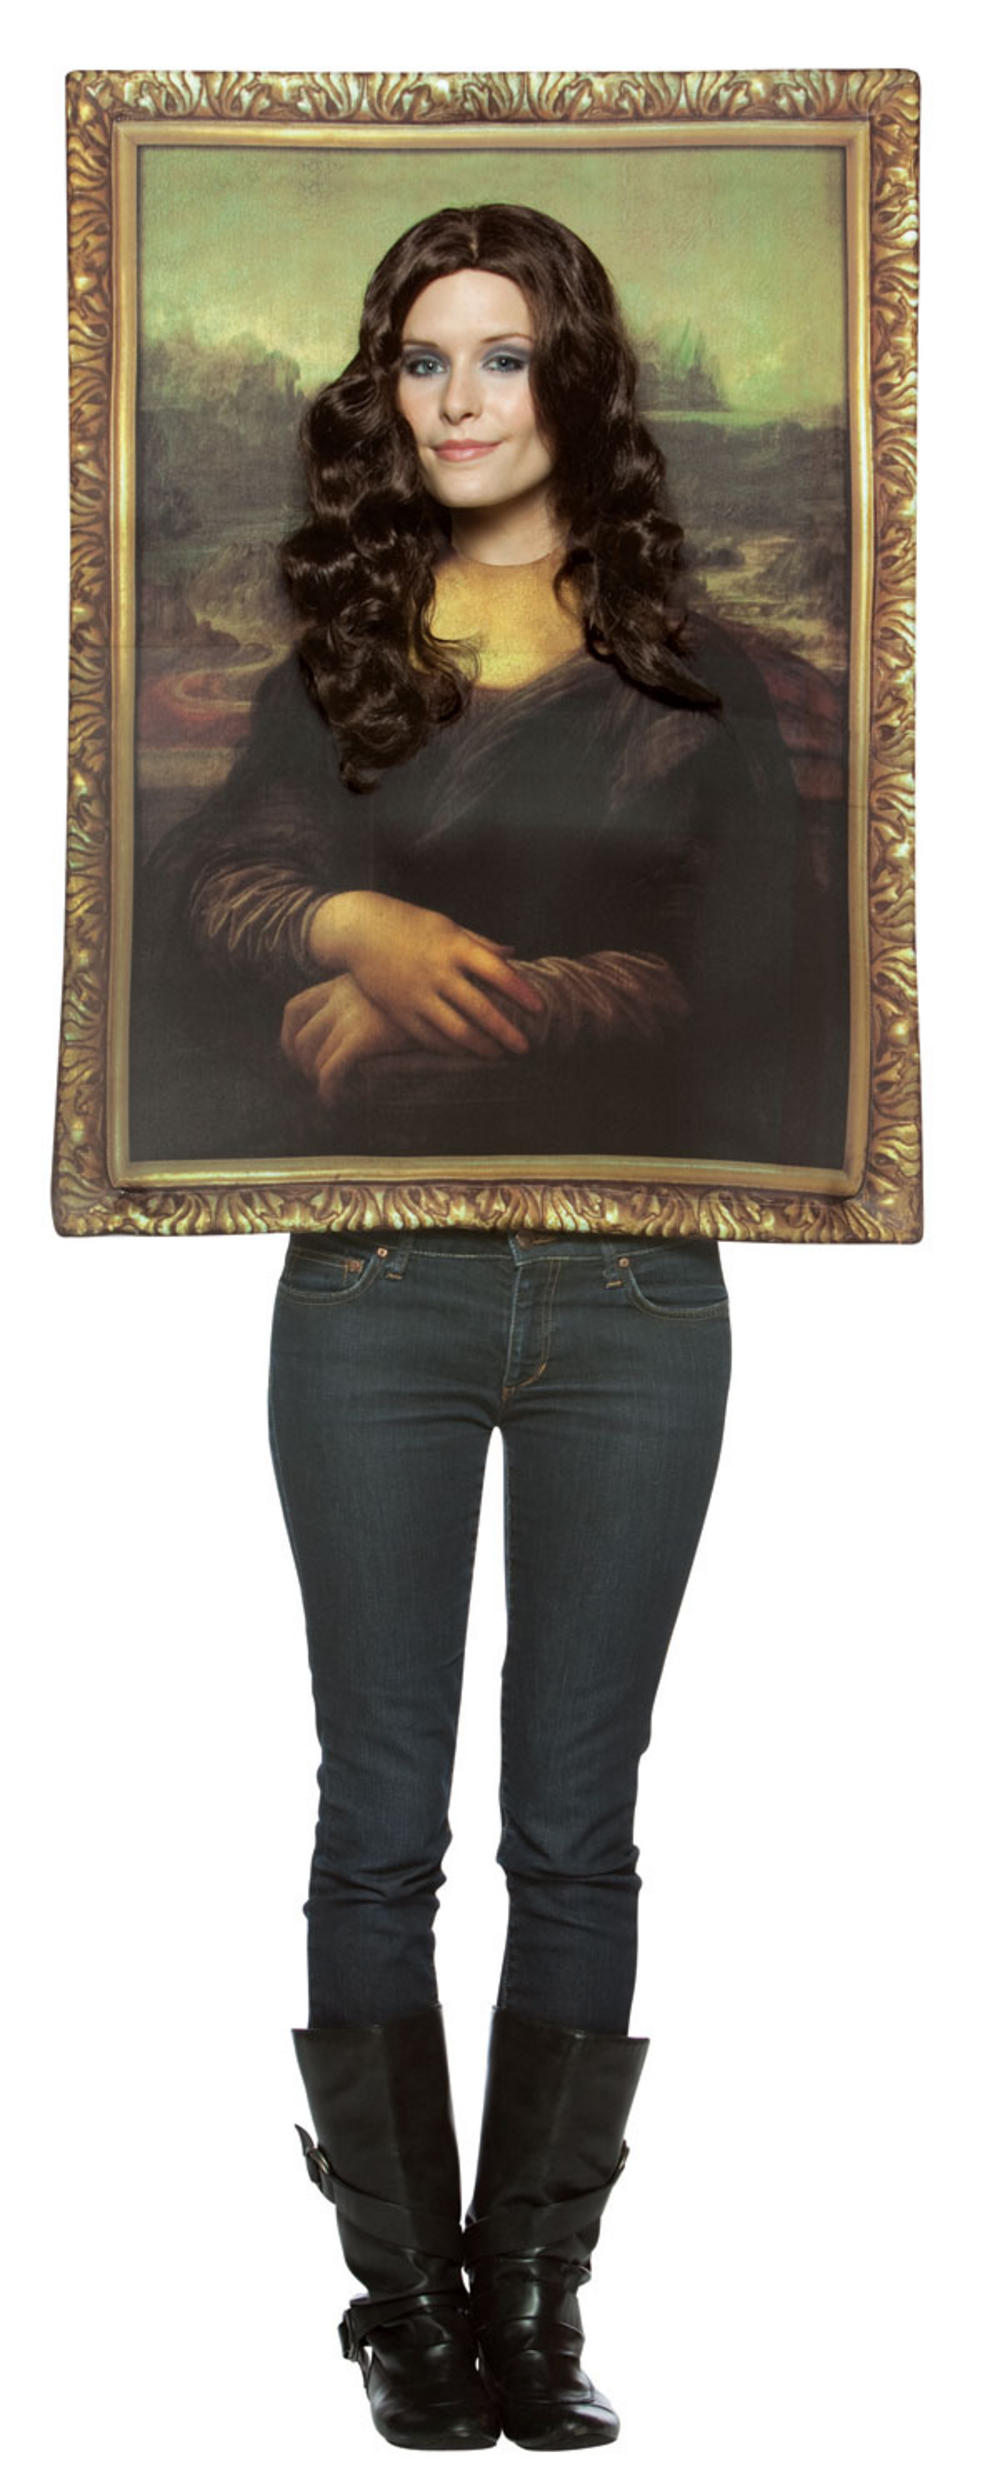 Mona Lisa Picture Frame Costume